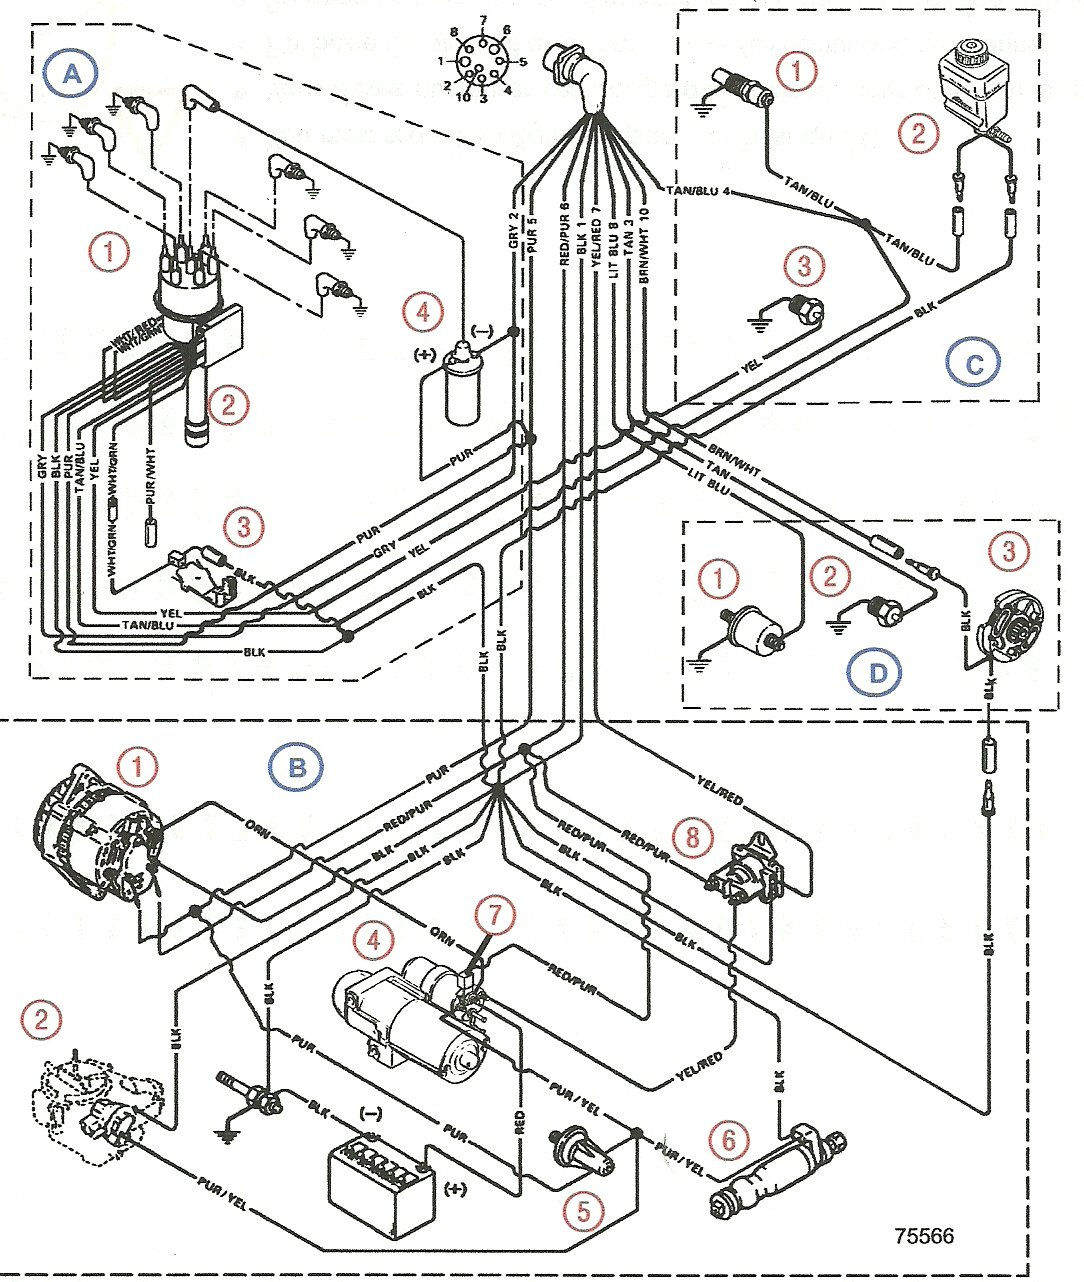 Mercruiser 4.3 V6 Wiring Diagram